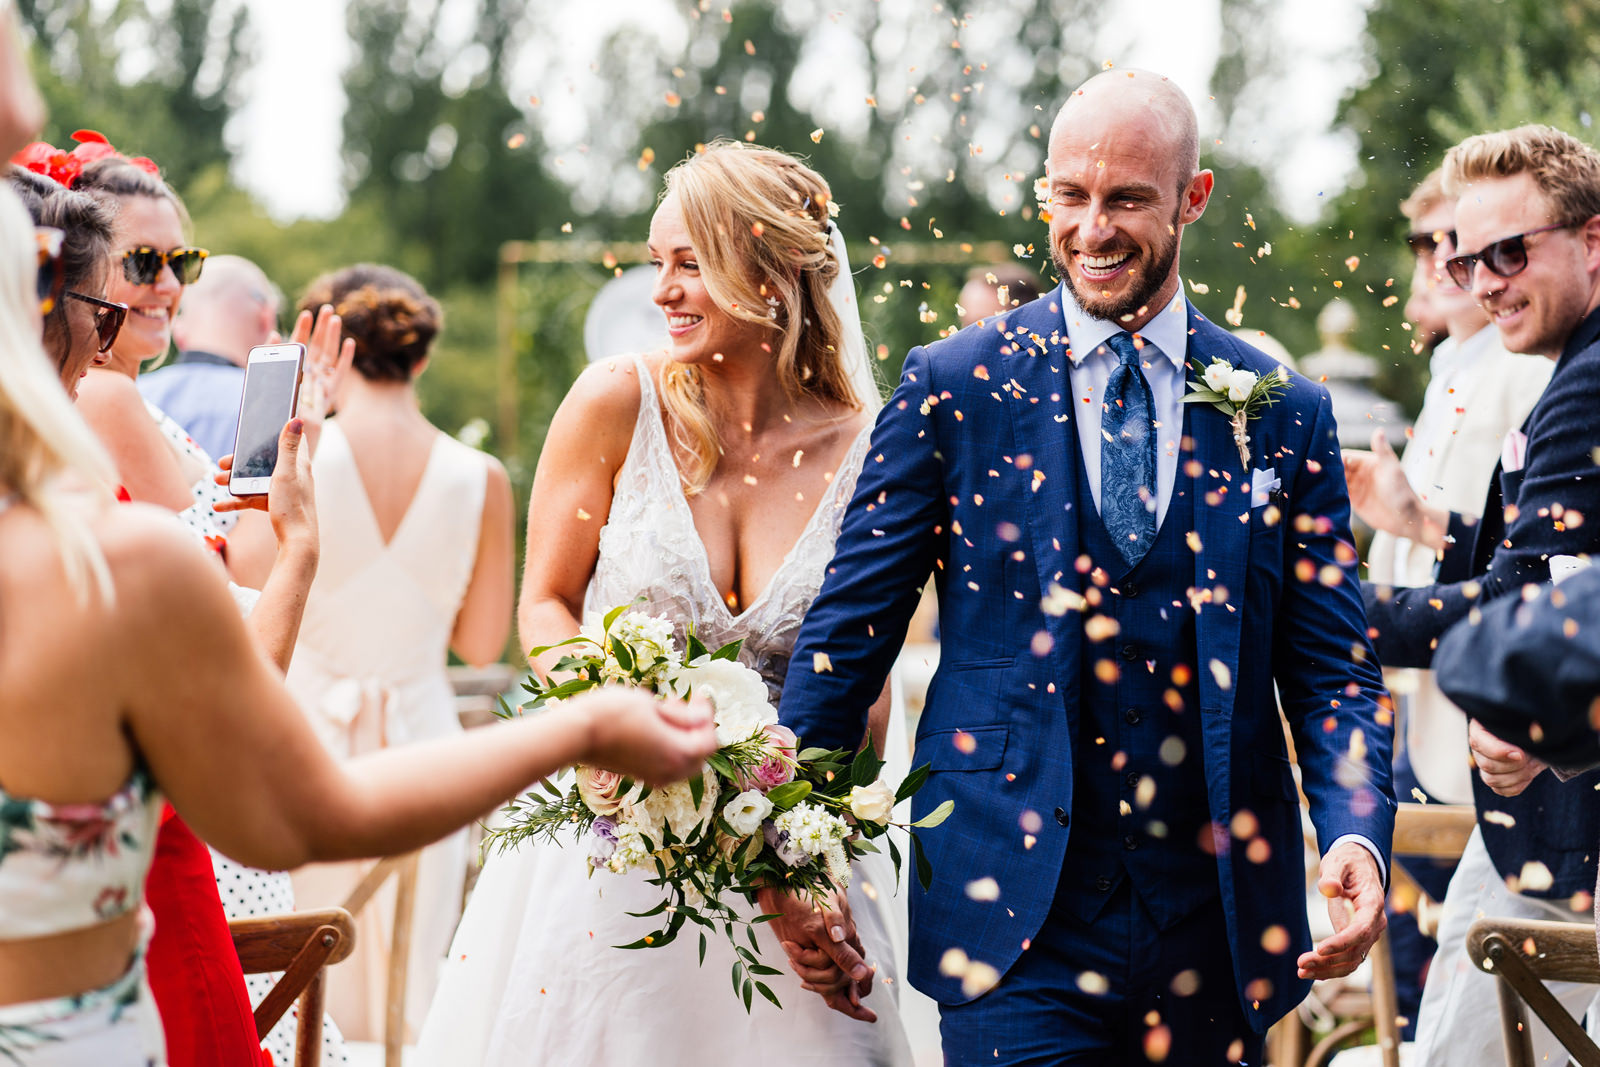 bride and groom showered with confetti at the end of the outdoor ceremony